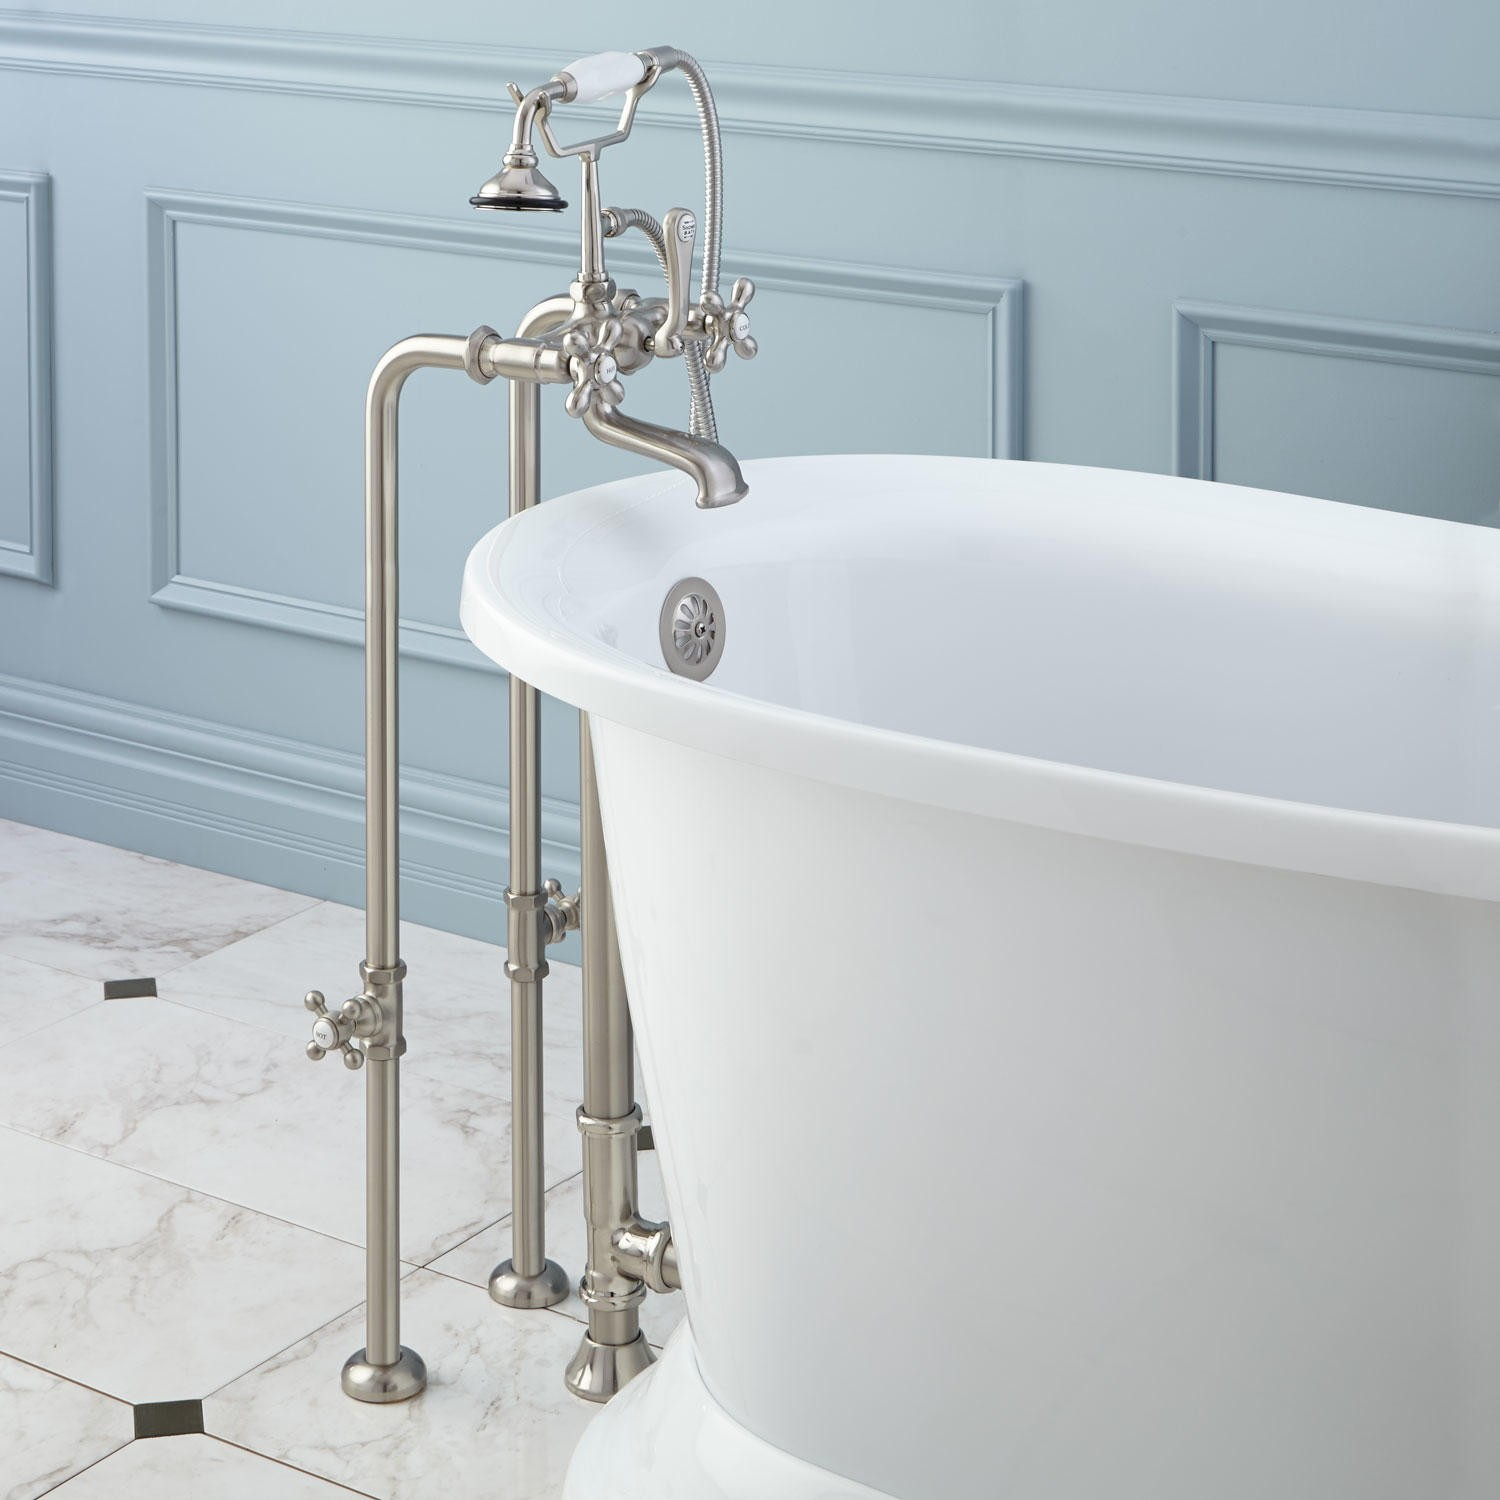 Freestanding Faucets For Clawfoot Tubs Faucet Ideas Site